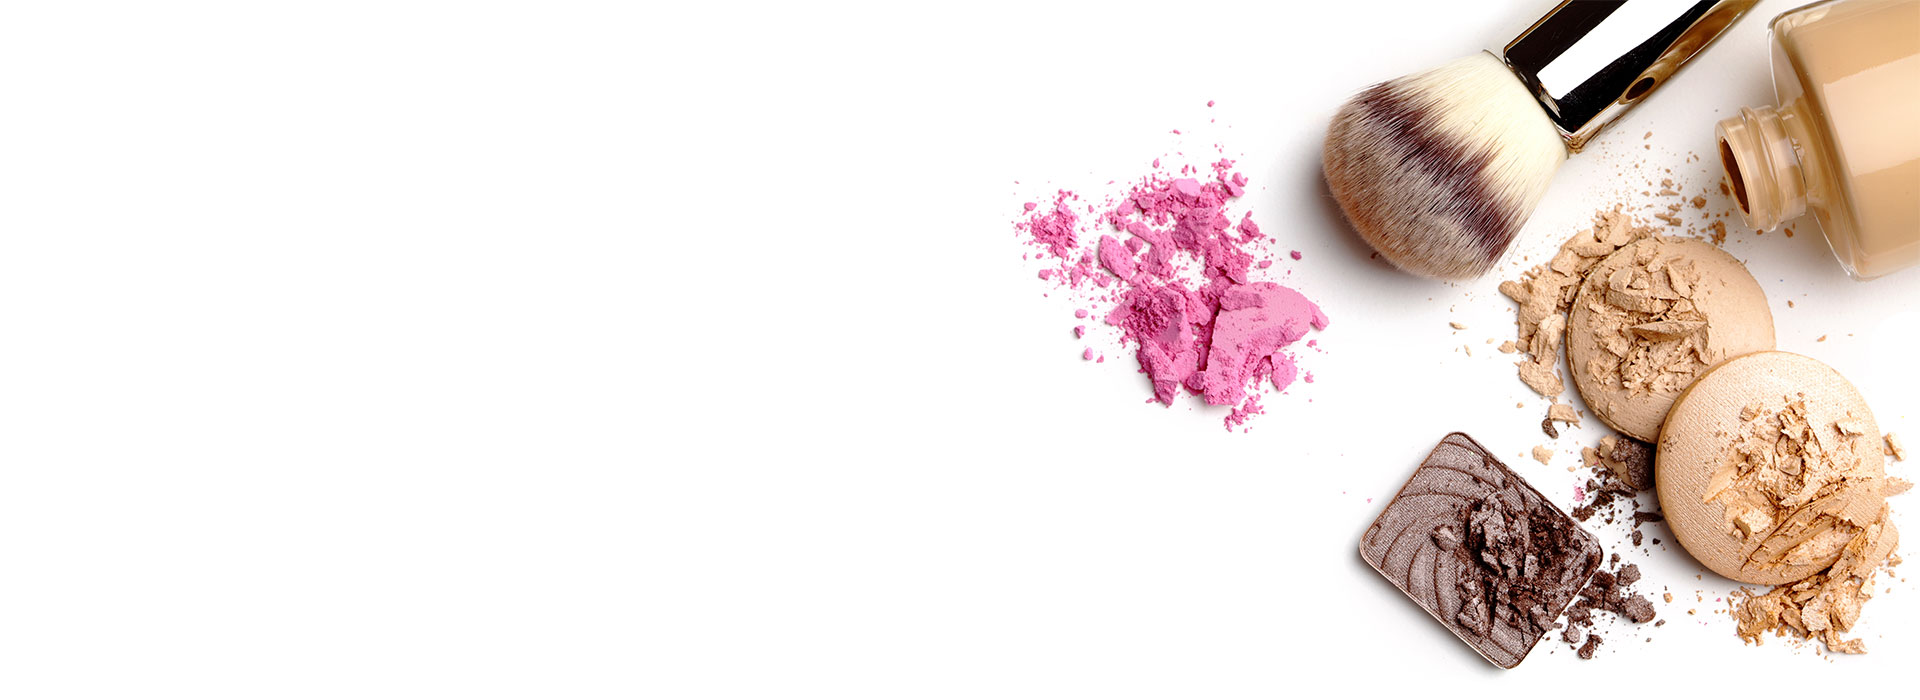 check-for-chemicals-in-cosmetics